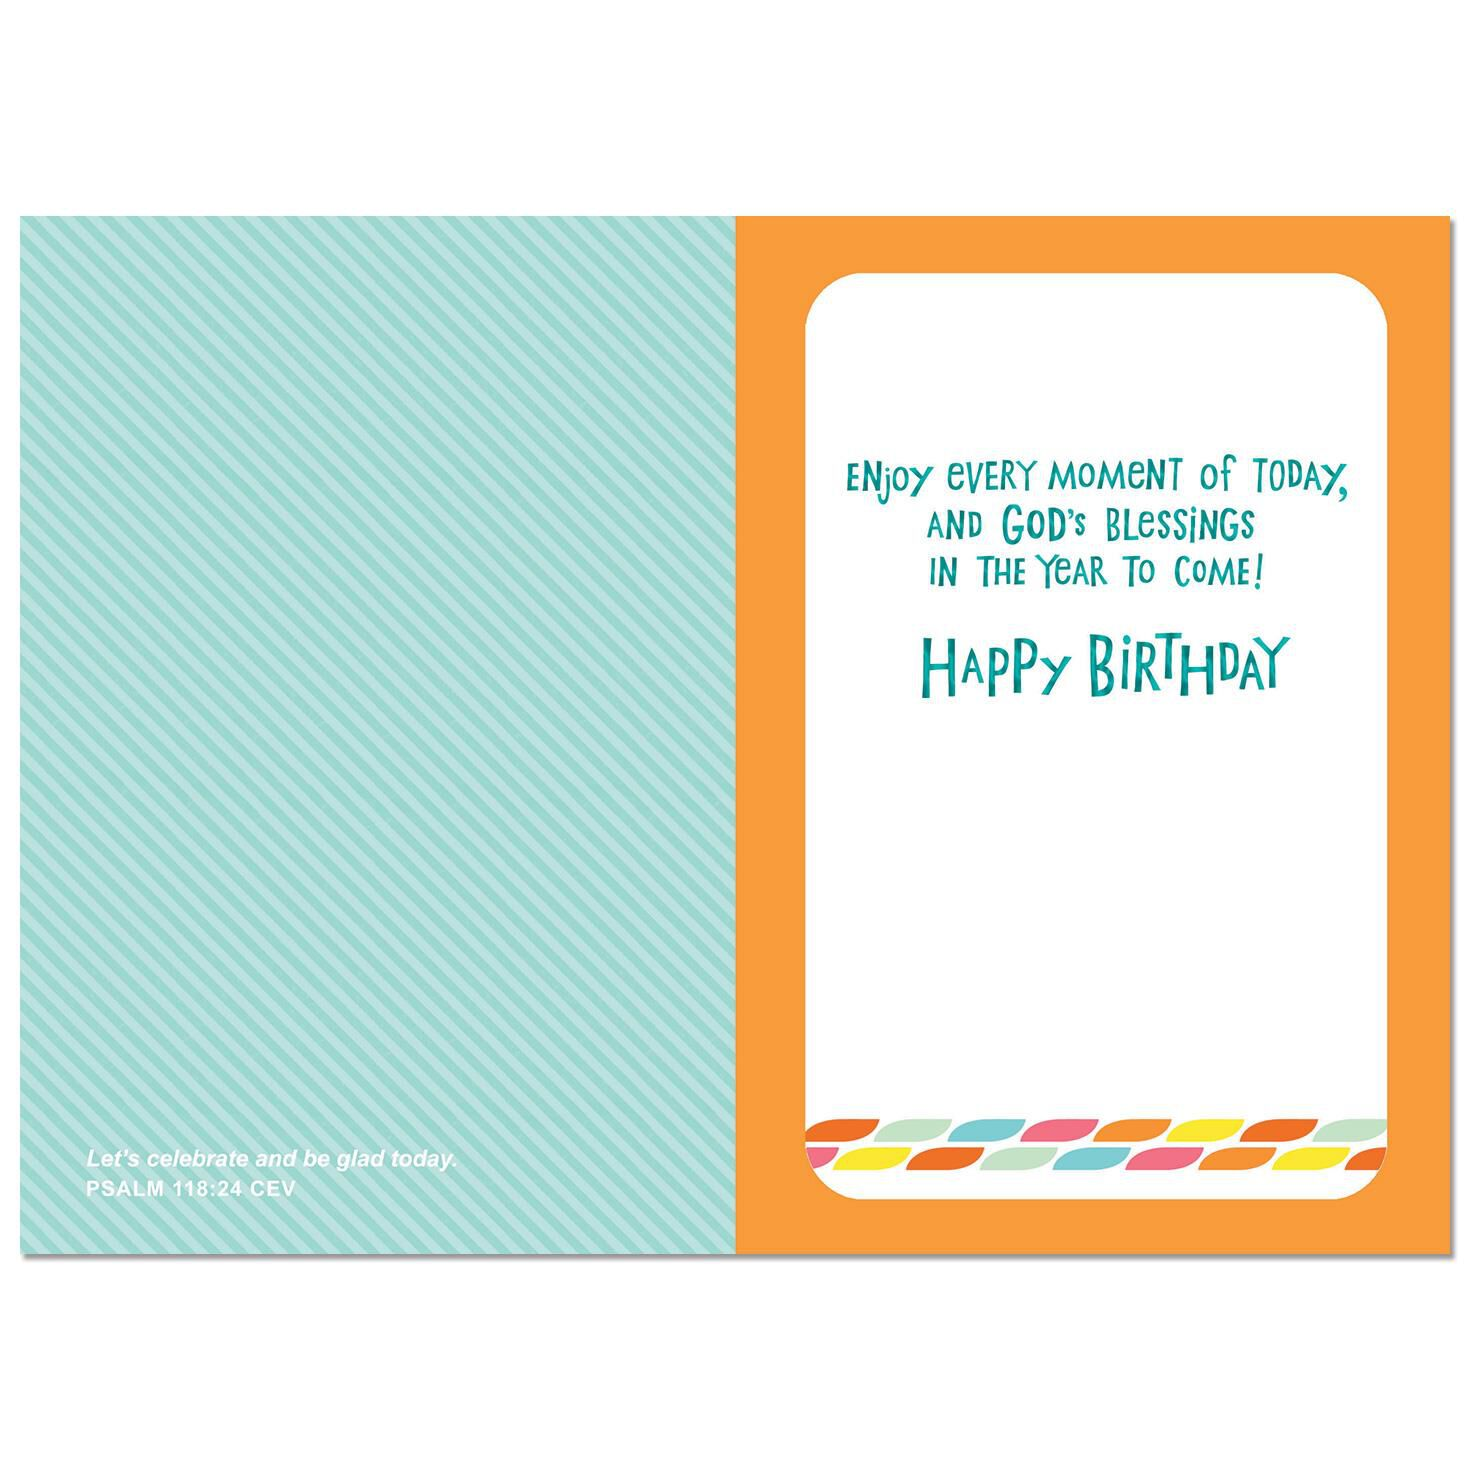 image regarding Free Printable Religious Birthday Cards titled DaySpring Christian and Non secular Greeting Playing cards Hallmark